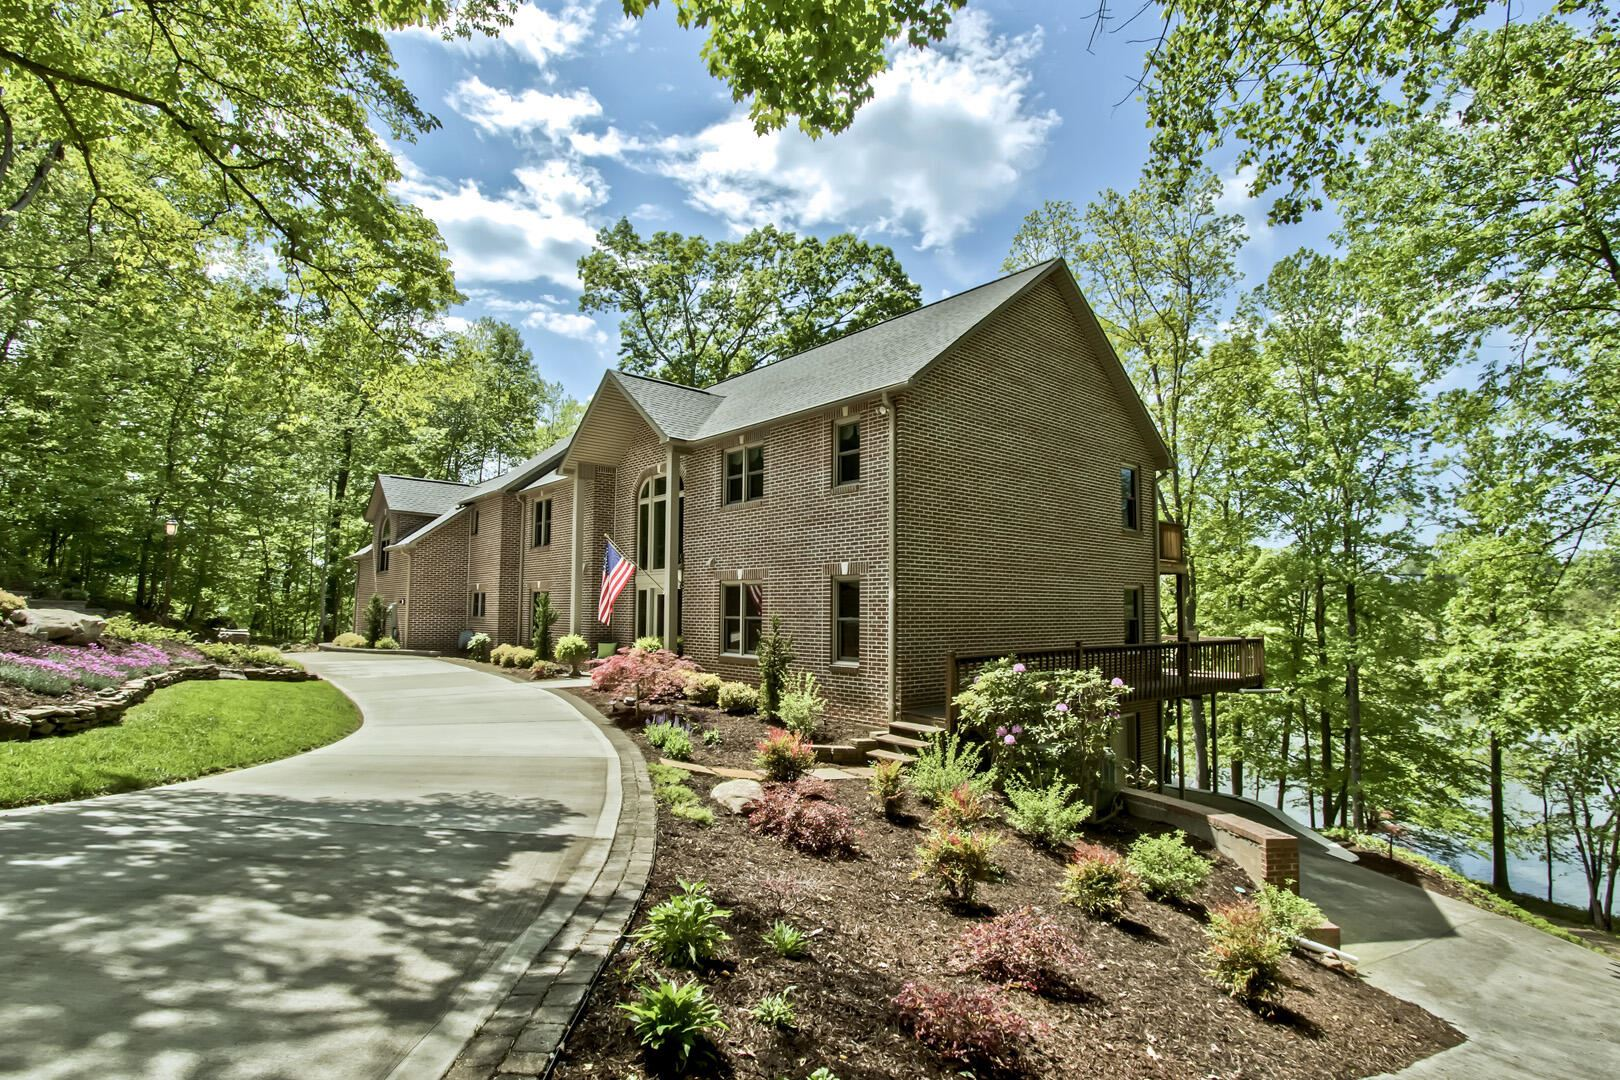 Photo for 108 Hart Orchard Rd, Kingston, TN 37763 (MLS # 1149576)